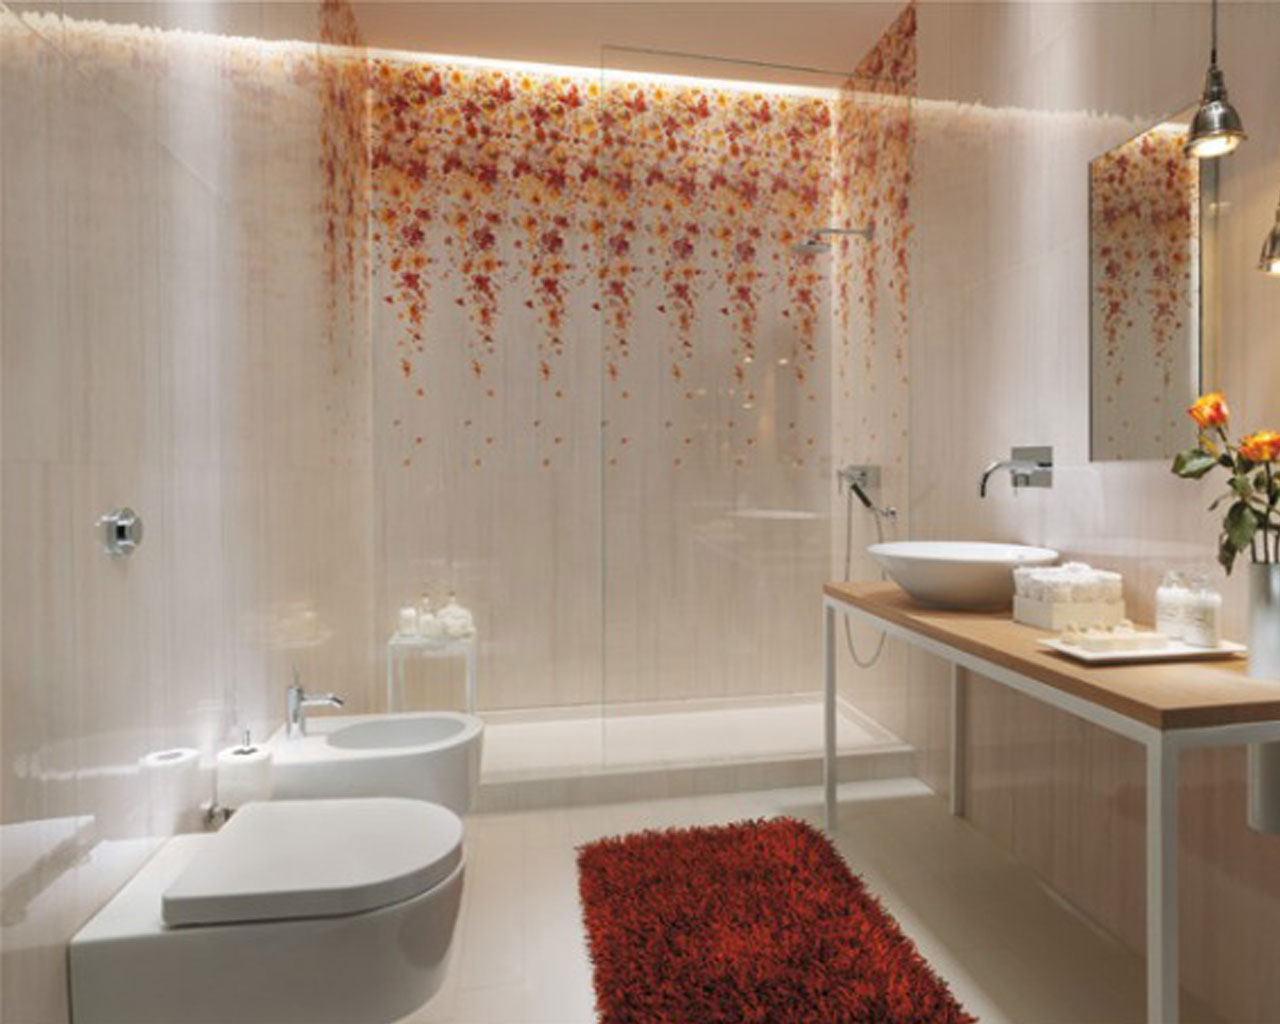 Inspirational Bathroom Designs Ideas Bring Out Natural And Cool Touch: Beautiful Bathroom Designs Ideas Red Rug Floral Tile Bedroom Wall